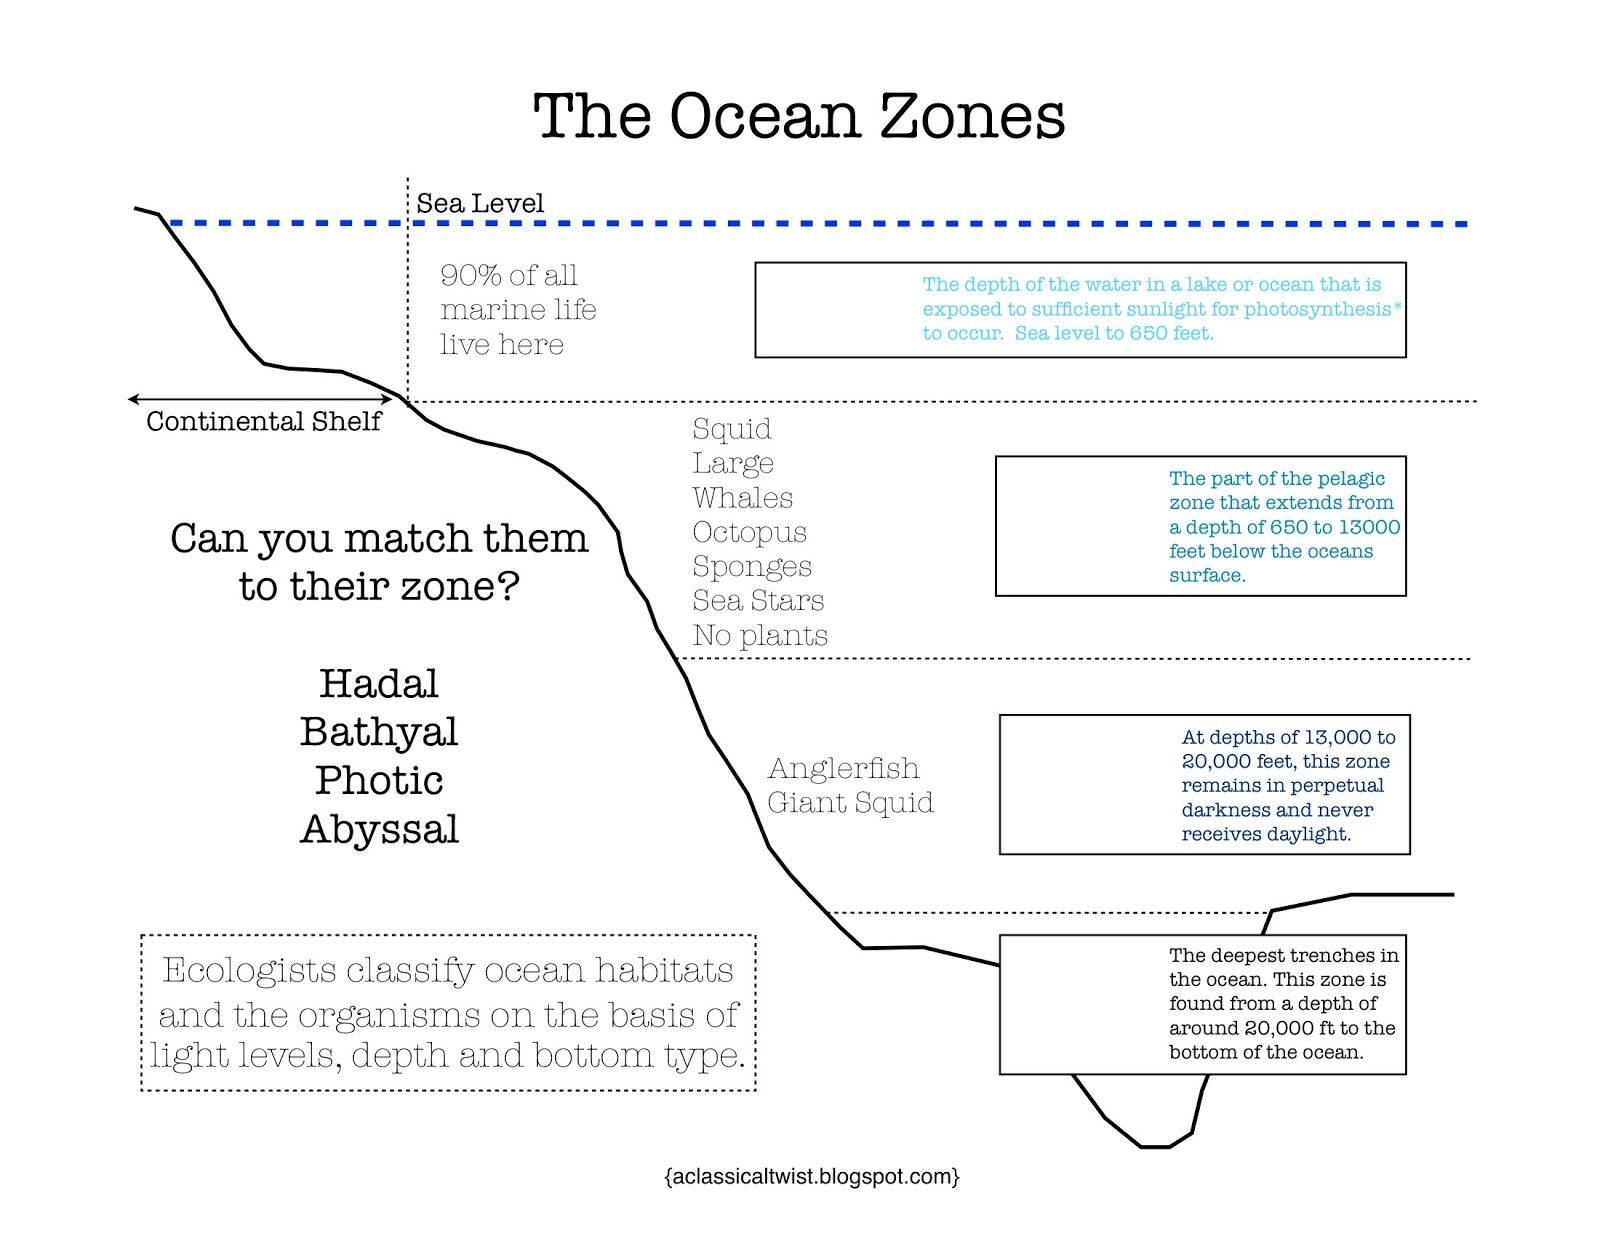 Worksheets Features Of The Ocean Floor Worksheet 36 best oceans images on pinterest teaching science heres a nice printable the ocean zones answer key can be found at